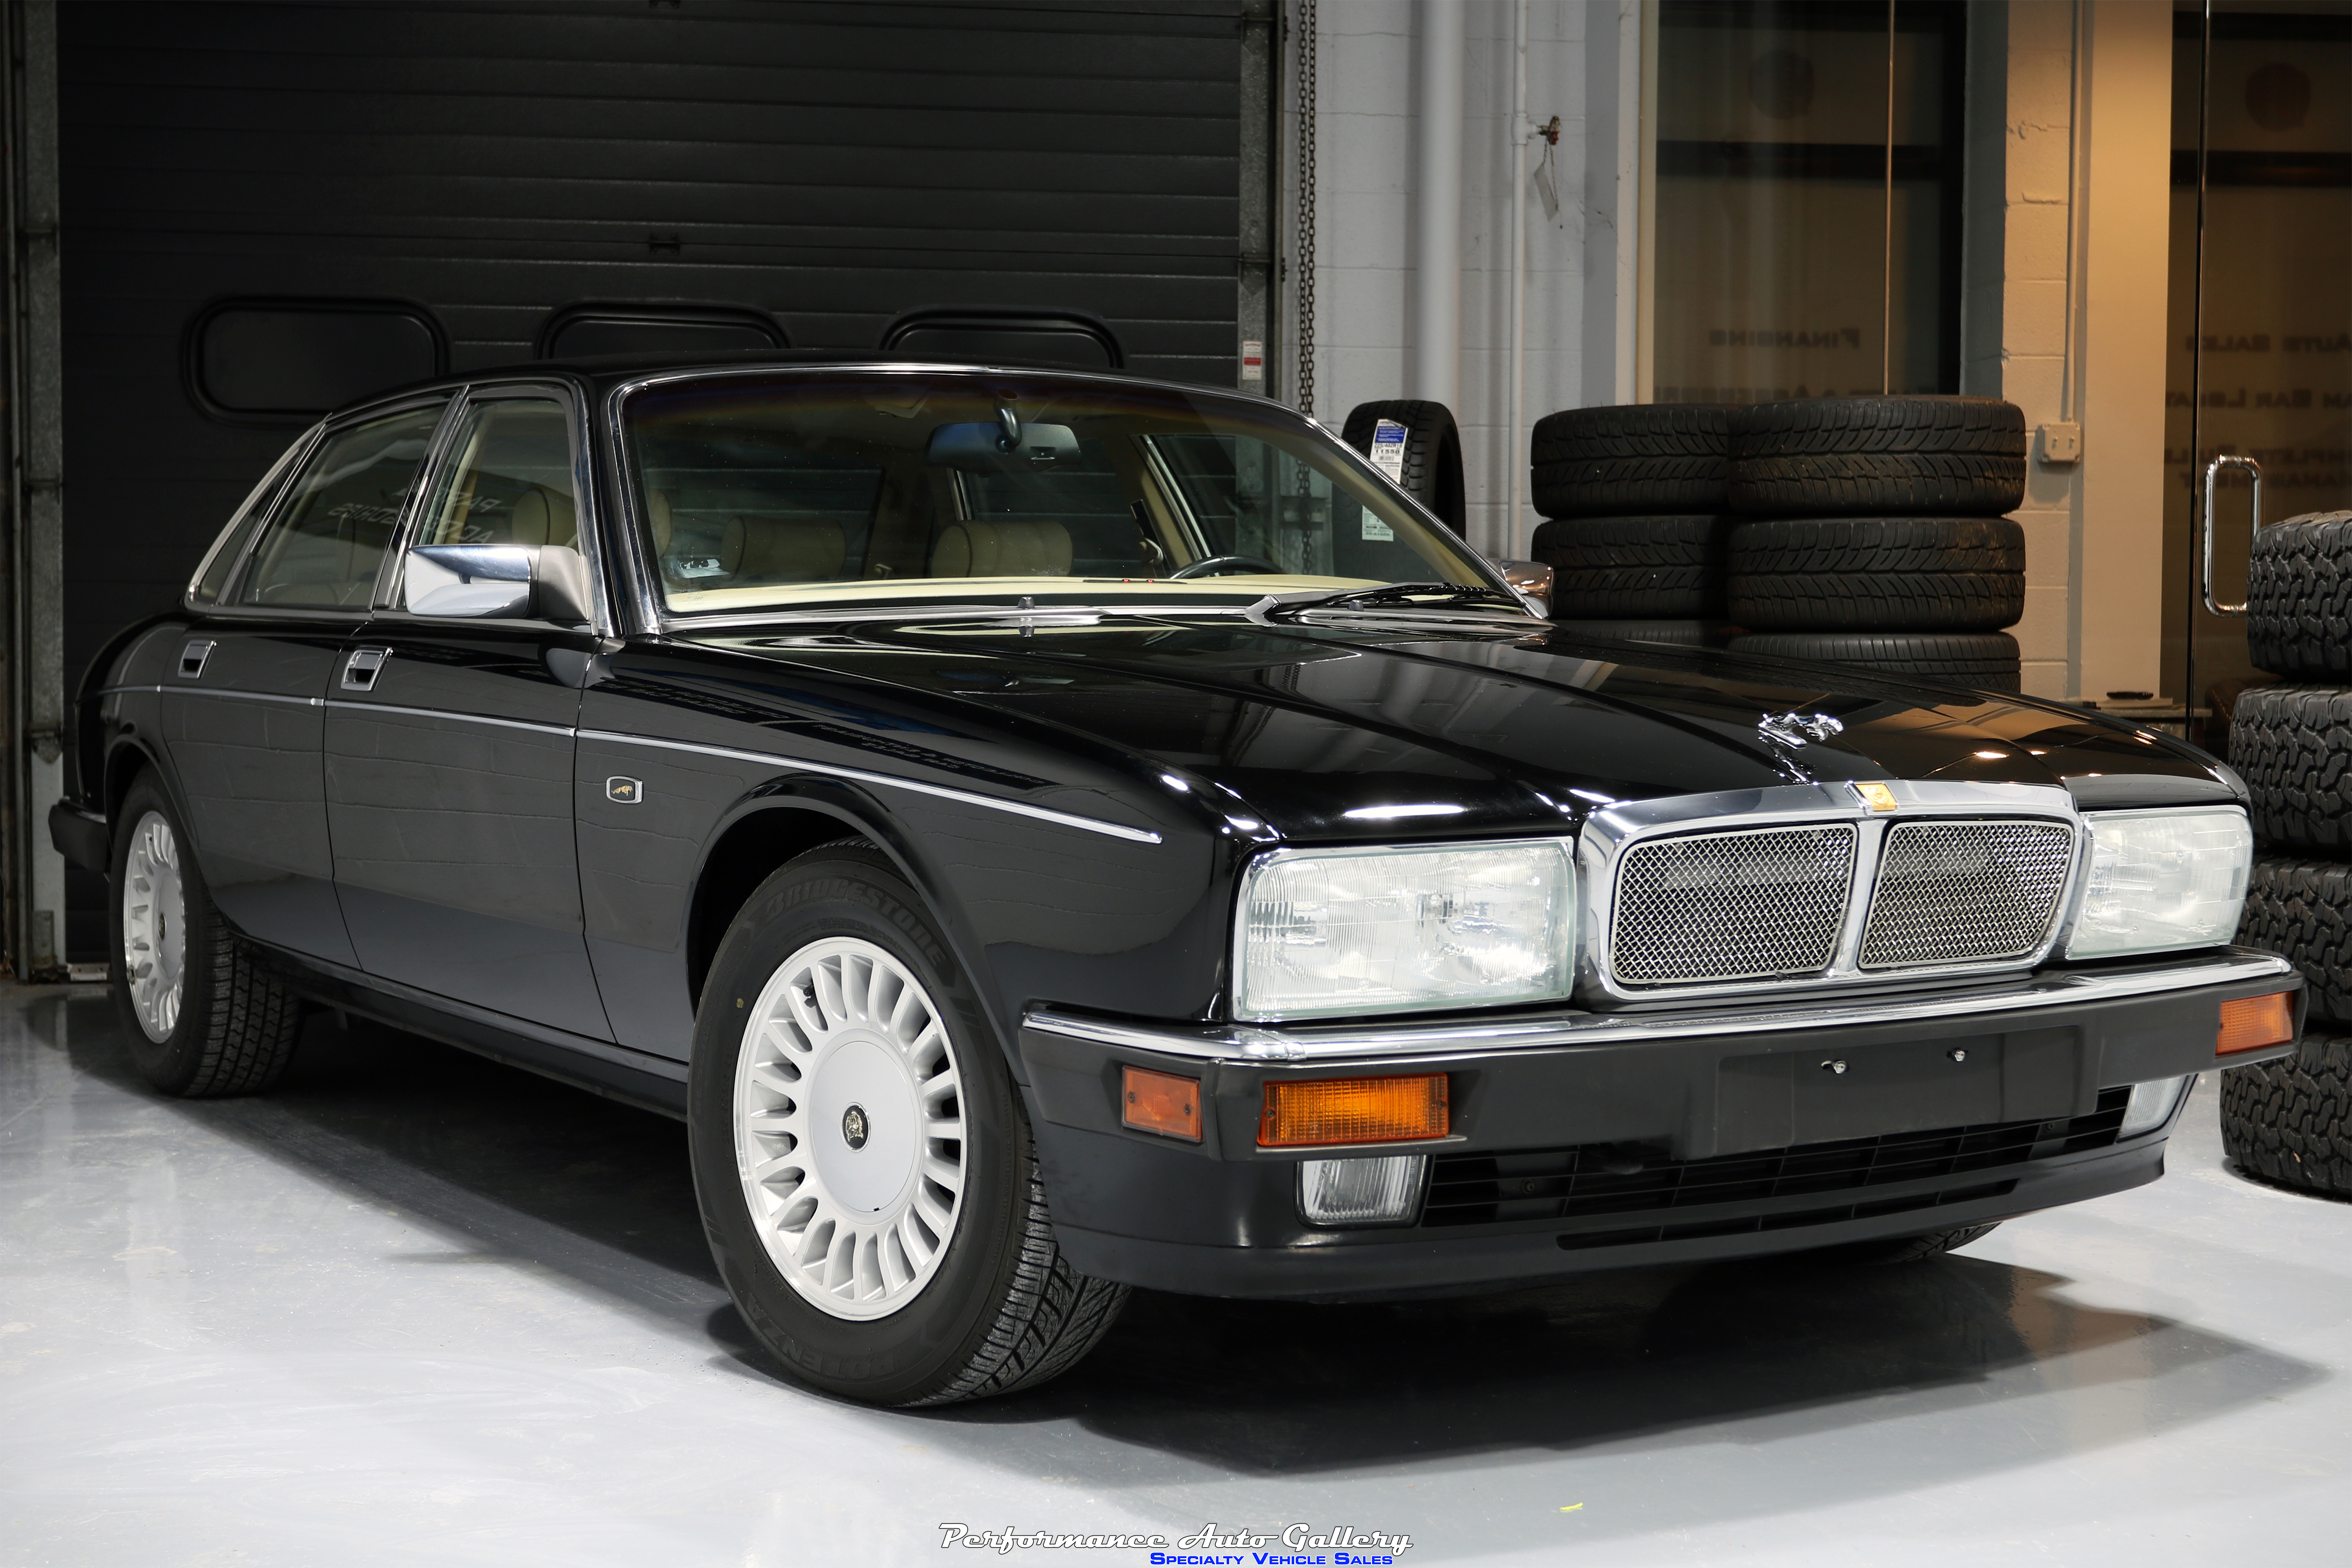 org upload car commons classic parts fhc jaguar to wikimedia exfordy cars wikipedia flickr sale for